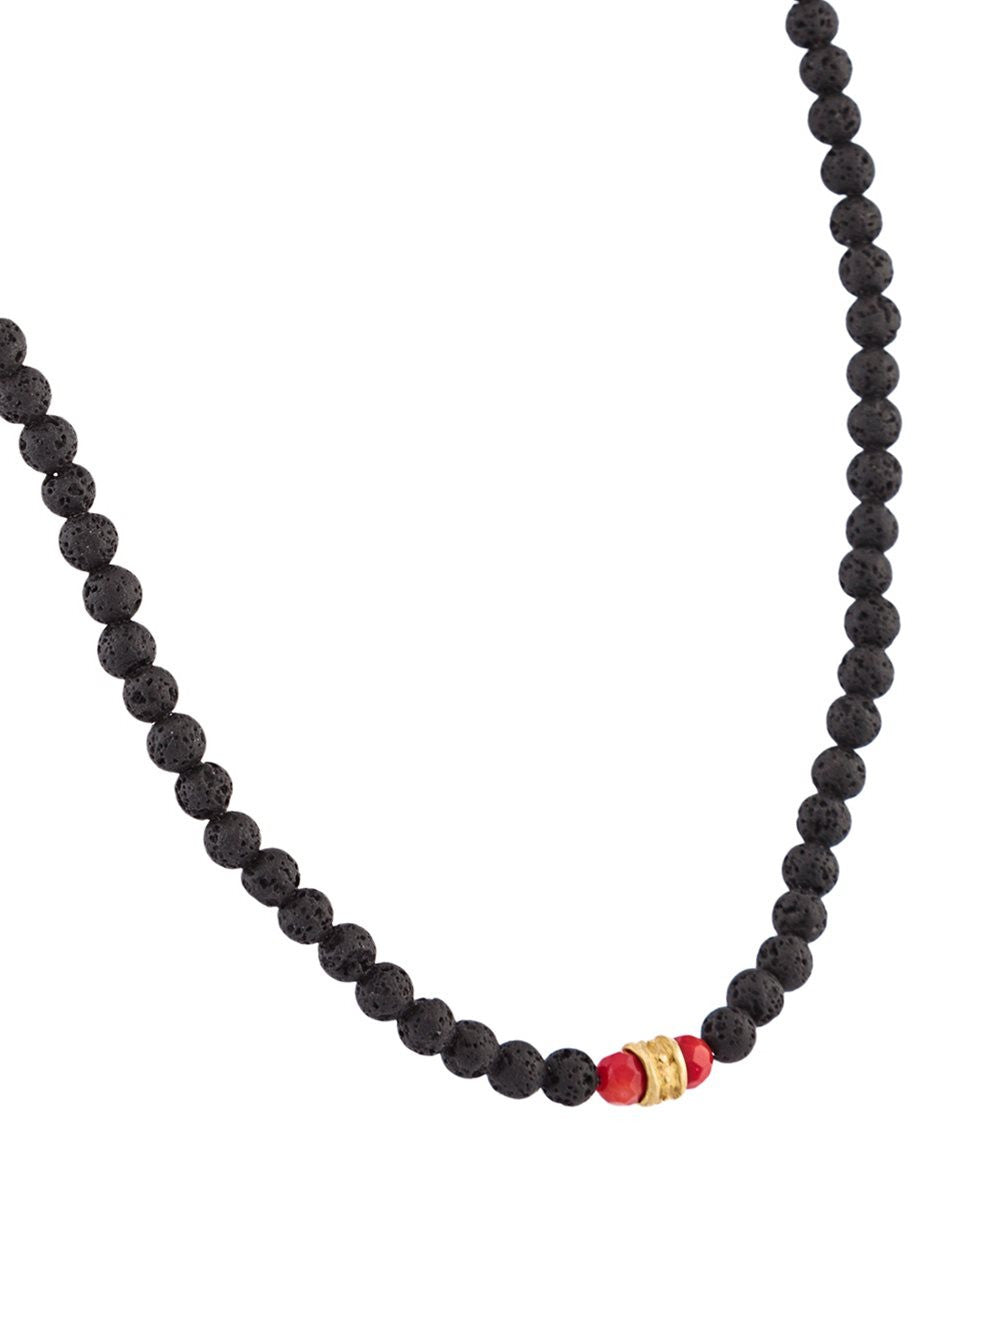 Beaded Lava Stone Necklace | N-1321-479 BRZ/SS/LAVA/CORAL